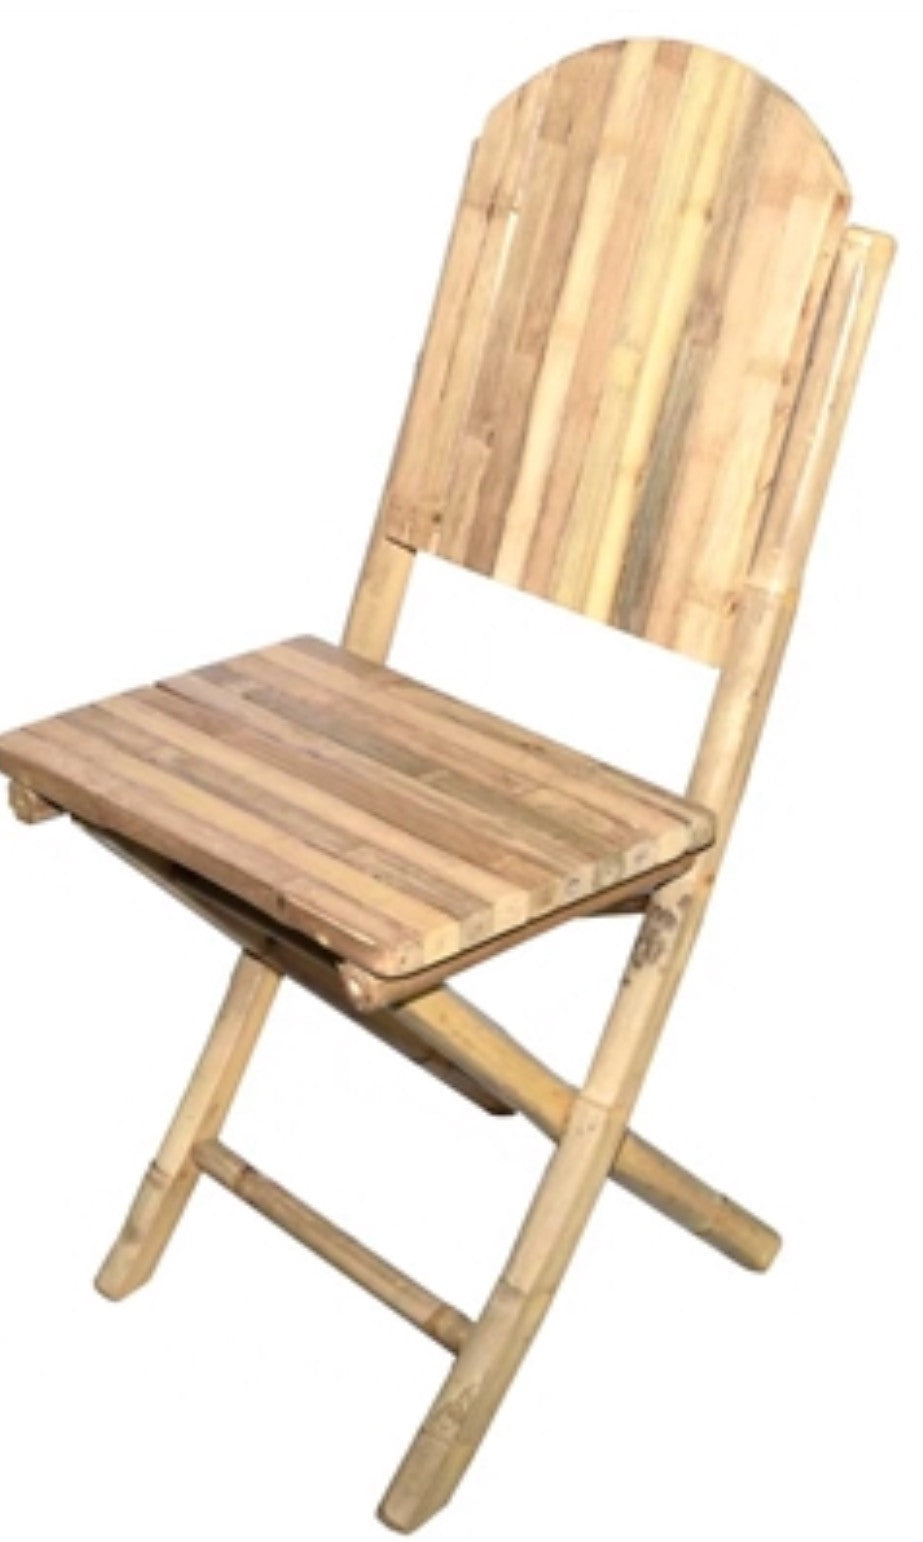 2 Solid Bamboo Armless Chair